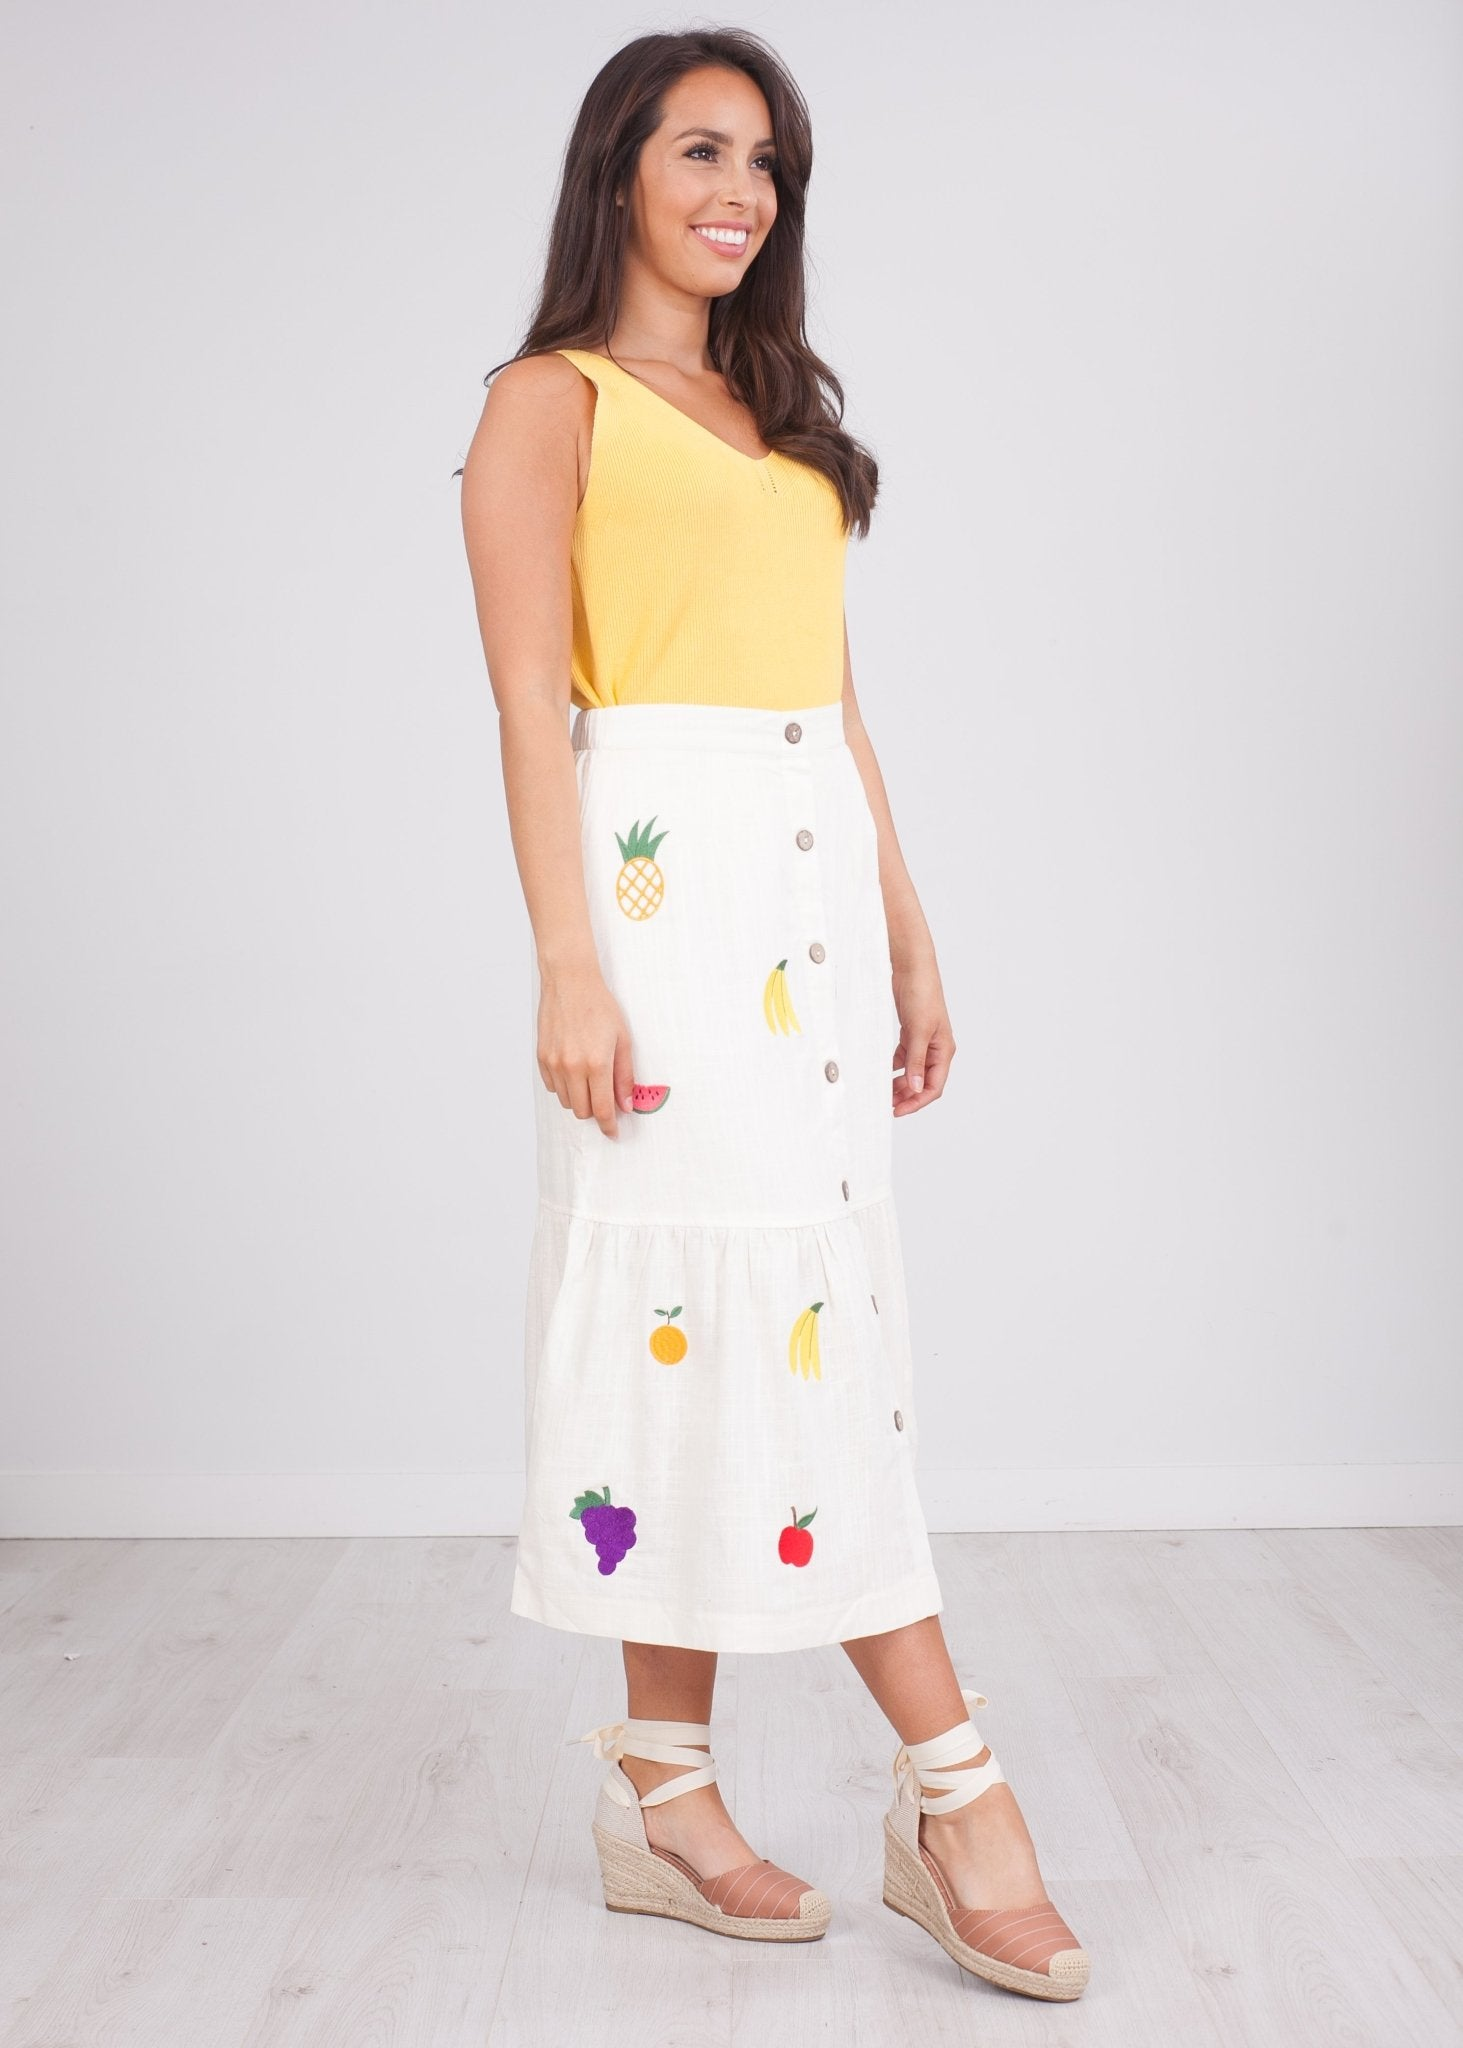 Pippa Fruit Embroidered Skirt - The Walk in Wardrobe